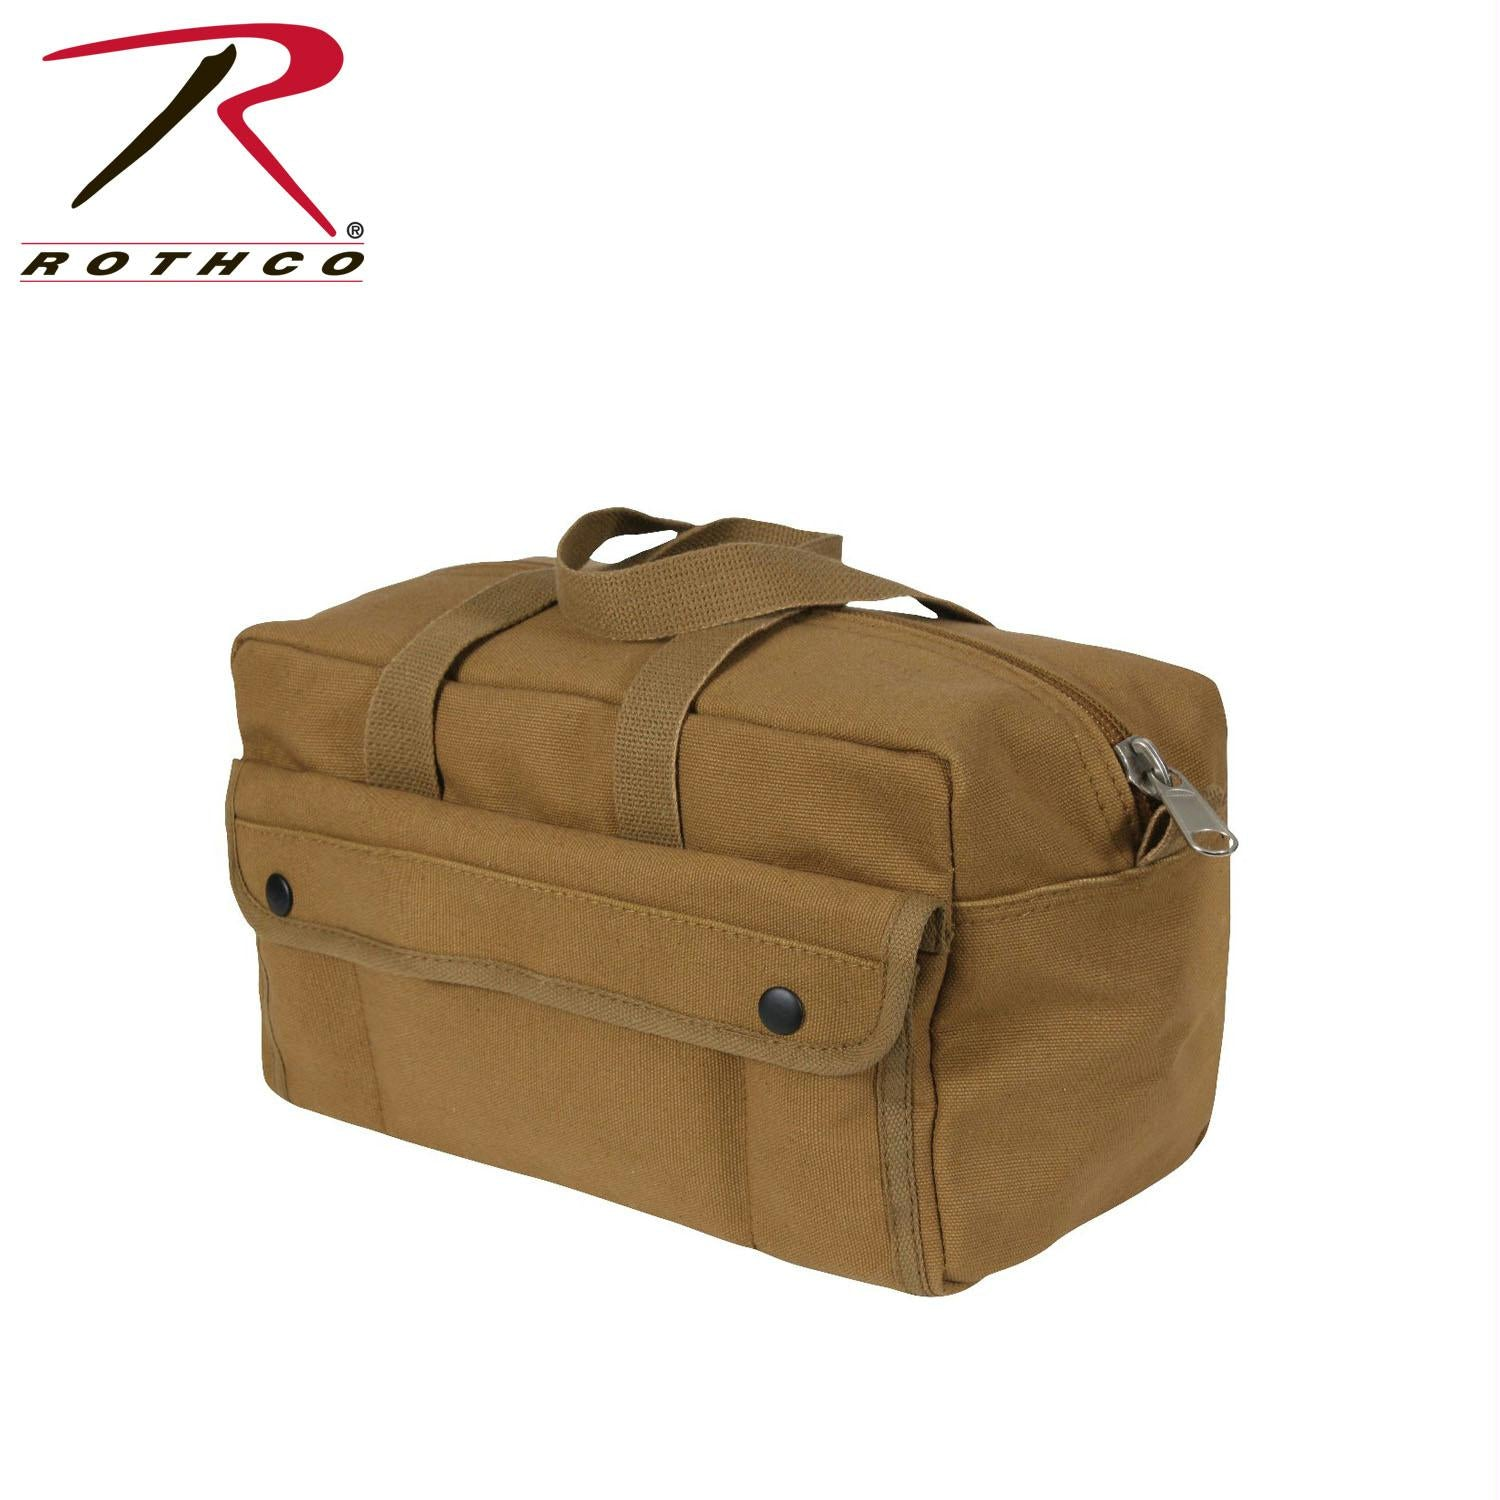 Rothco G.I. Type Mechanics Tool Bags